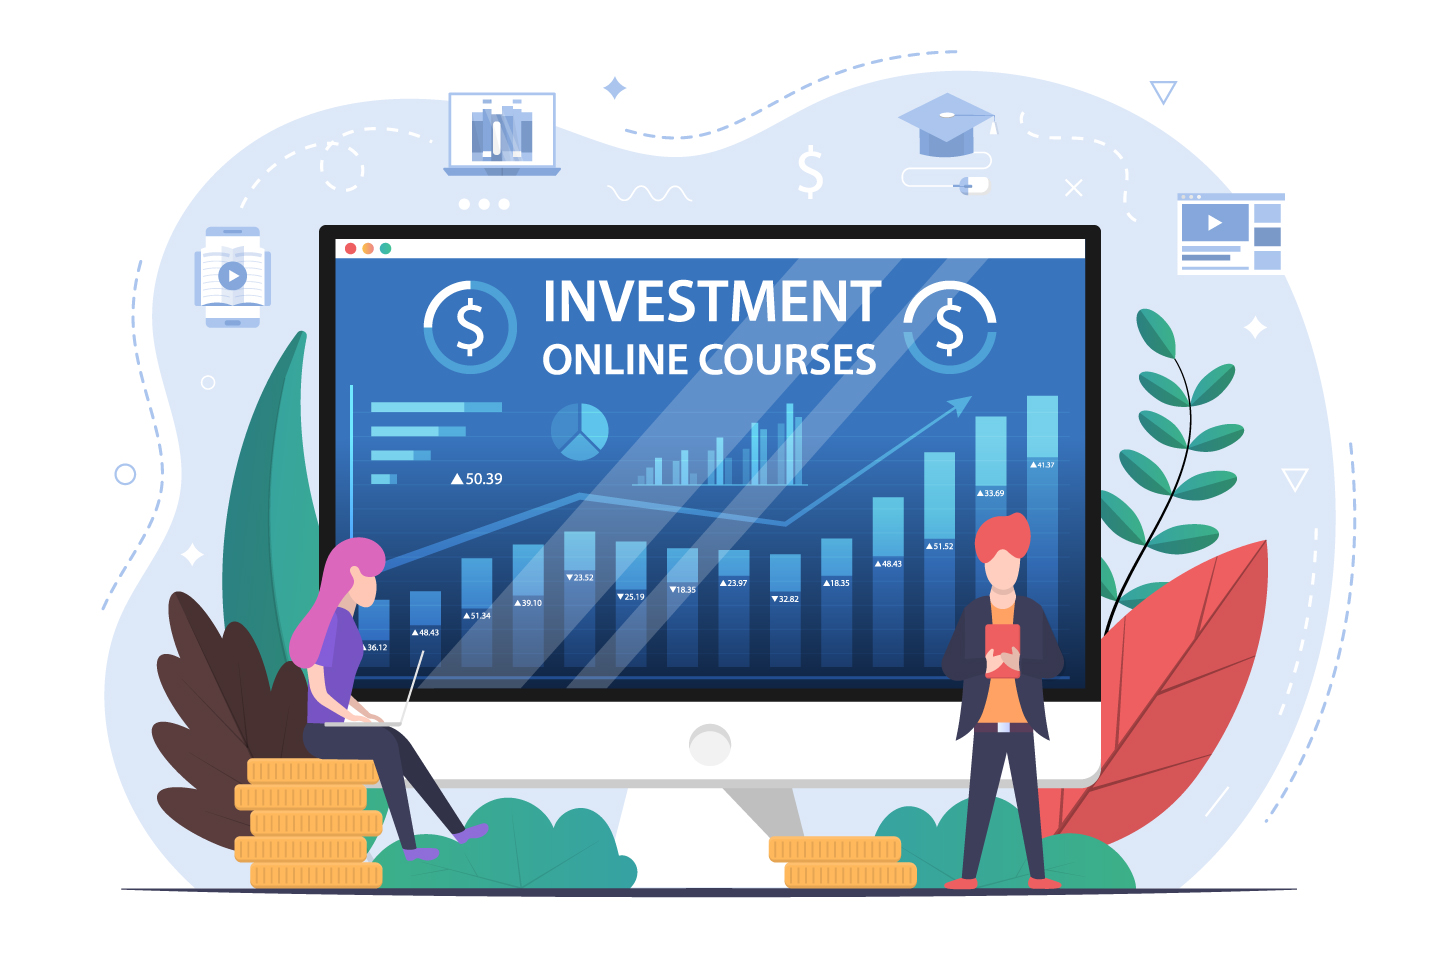 Investment Online Courses Vector Design